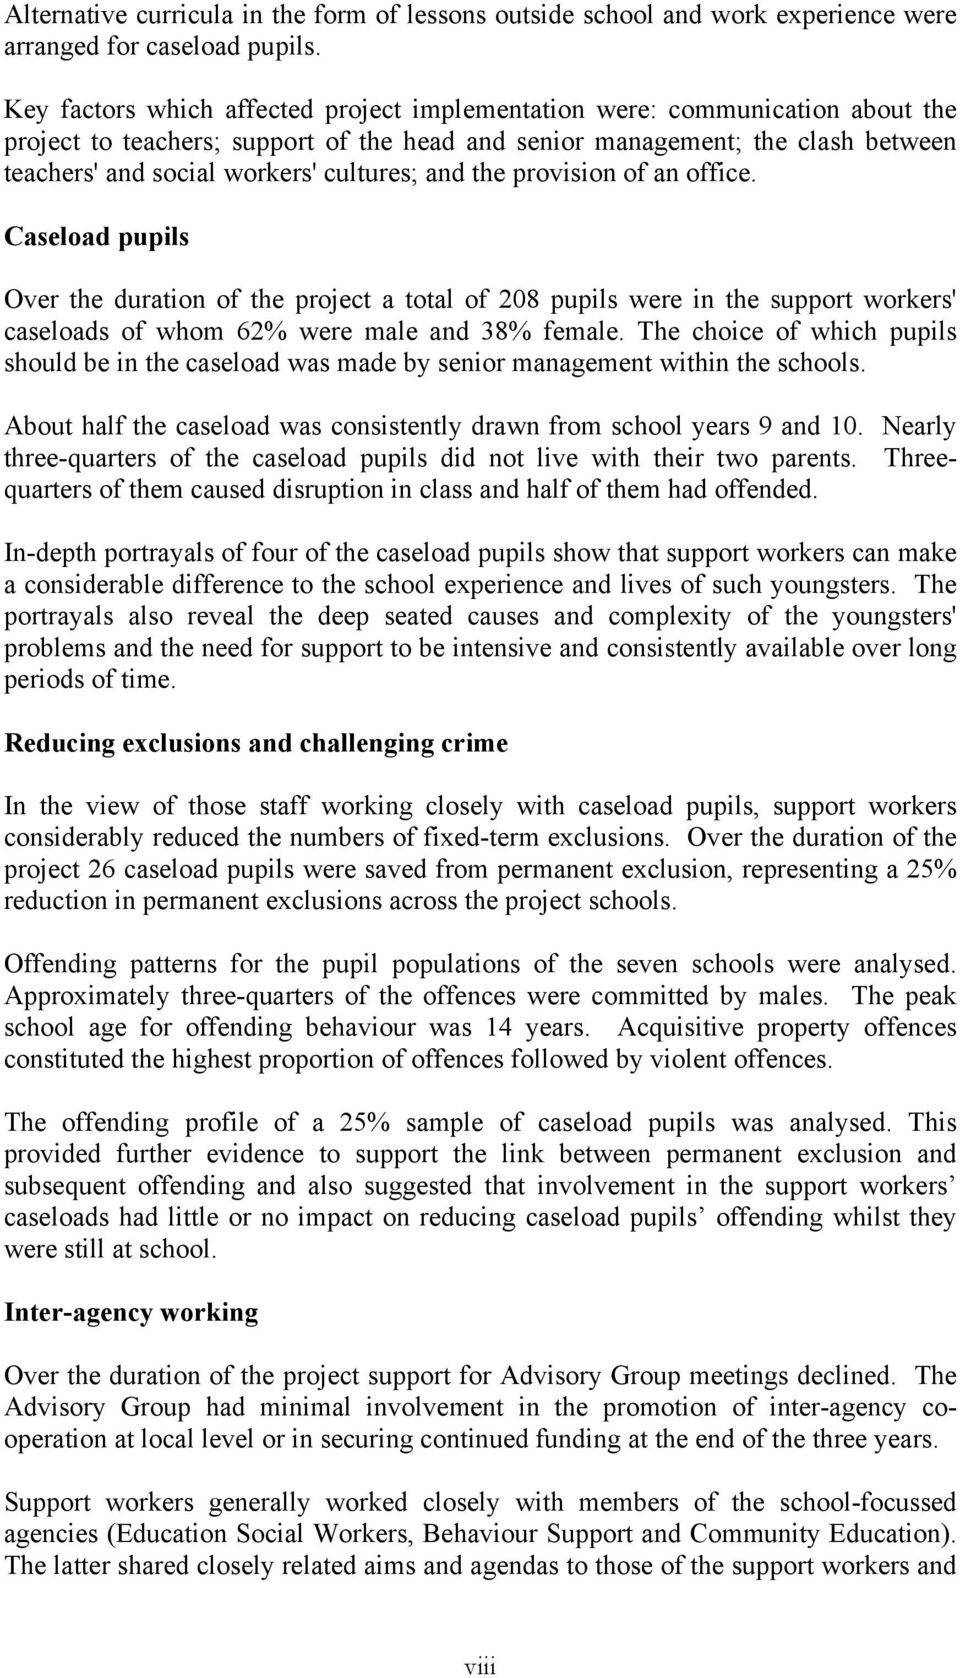 cultures; and the provision of an office. Caseload pupils Over the duration of the project a total of 208 pupils were in the support workers' caseloads of whom 62% were male and 38% female.